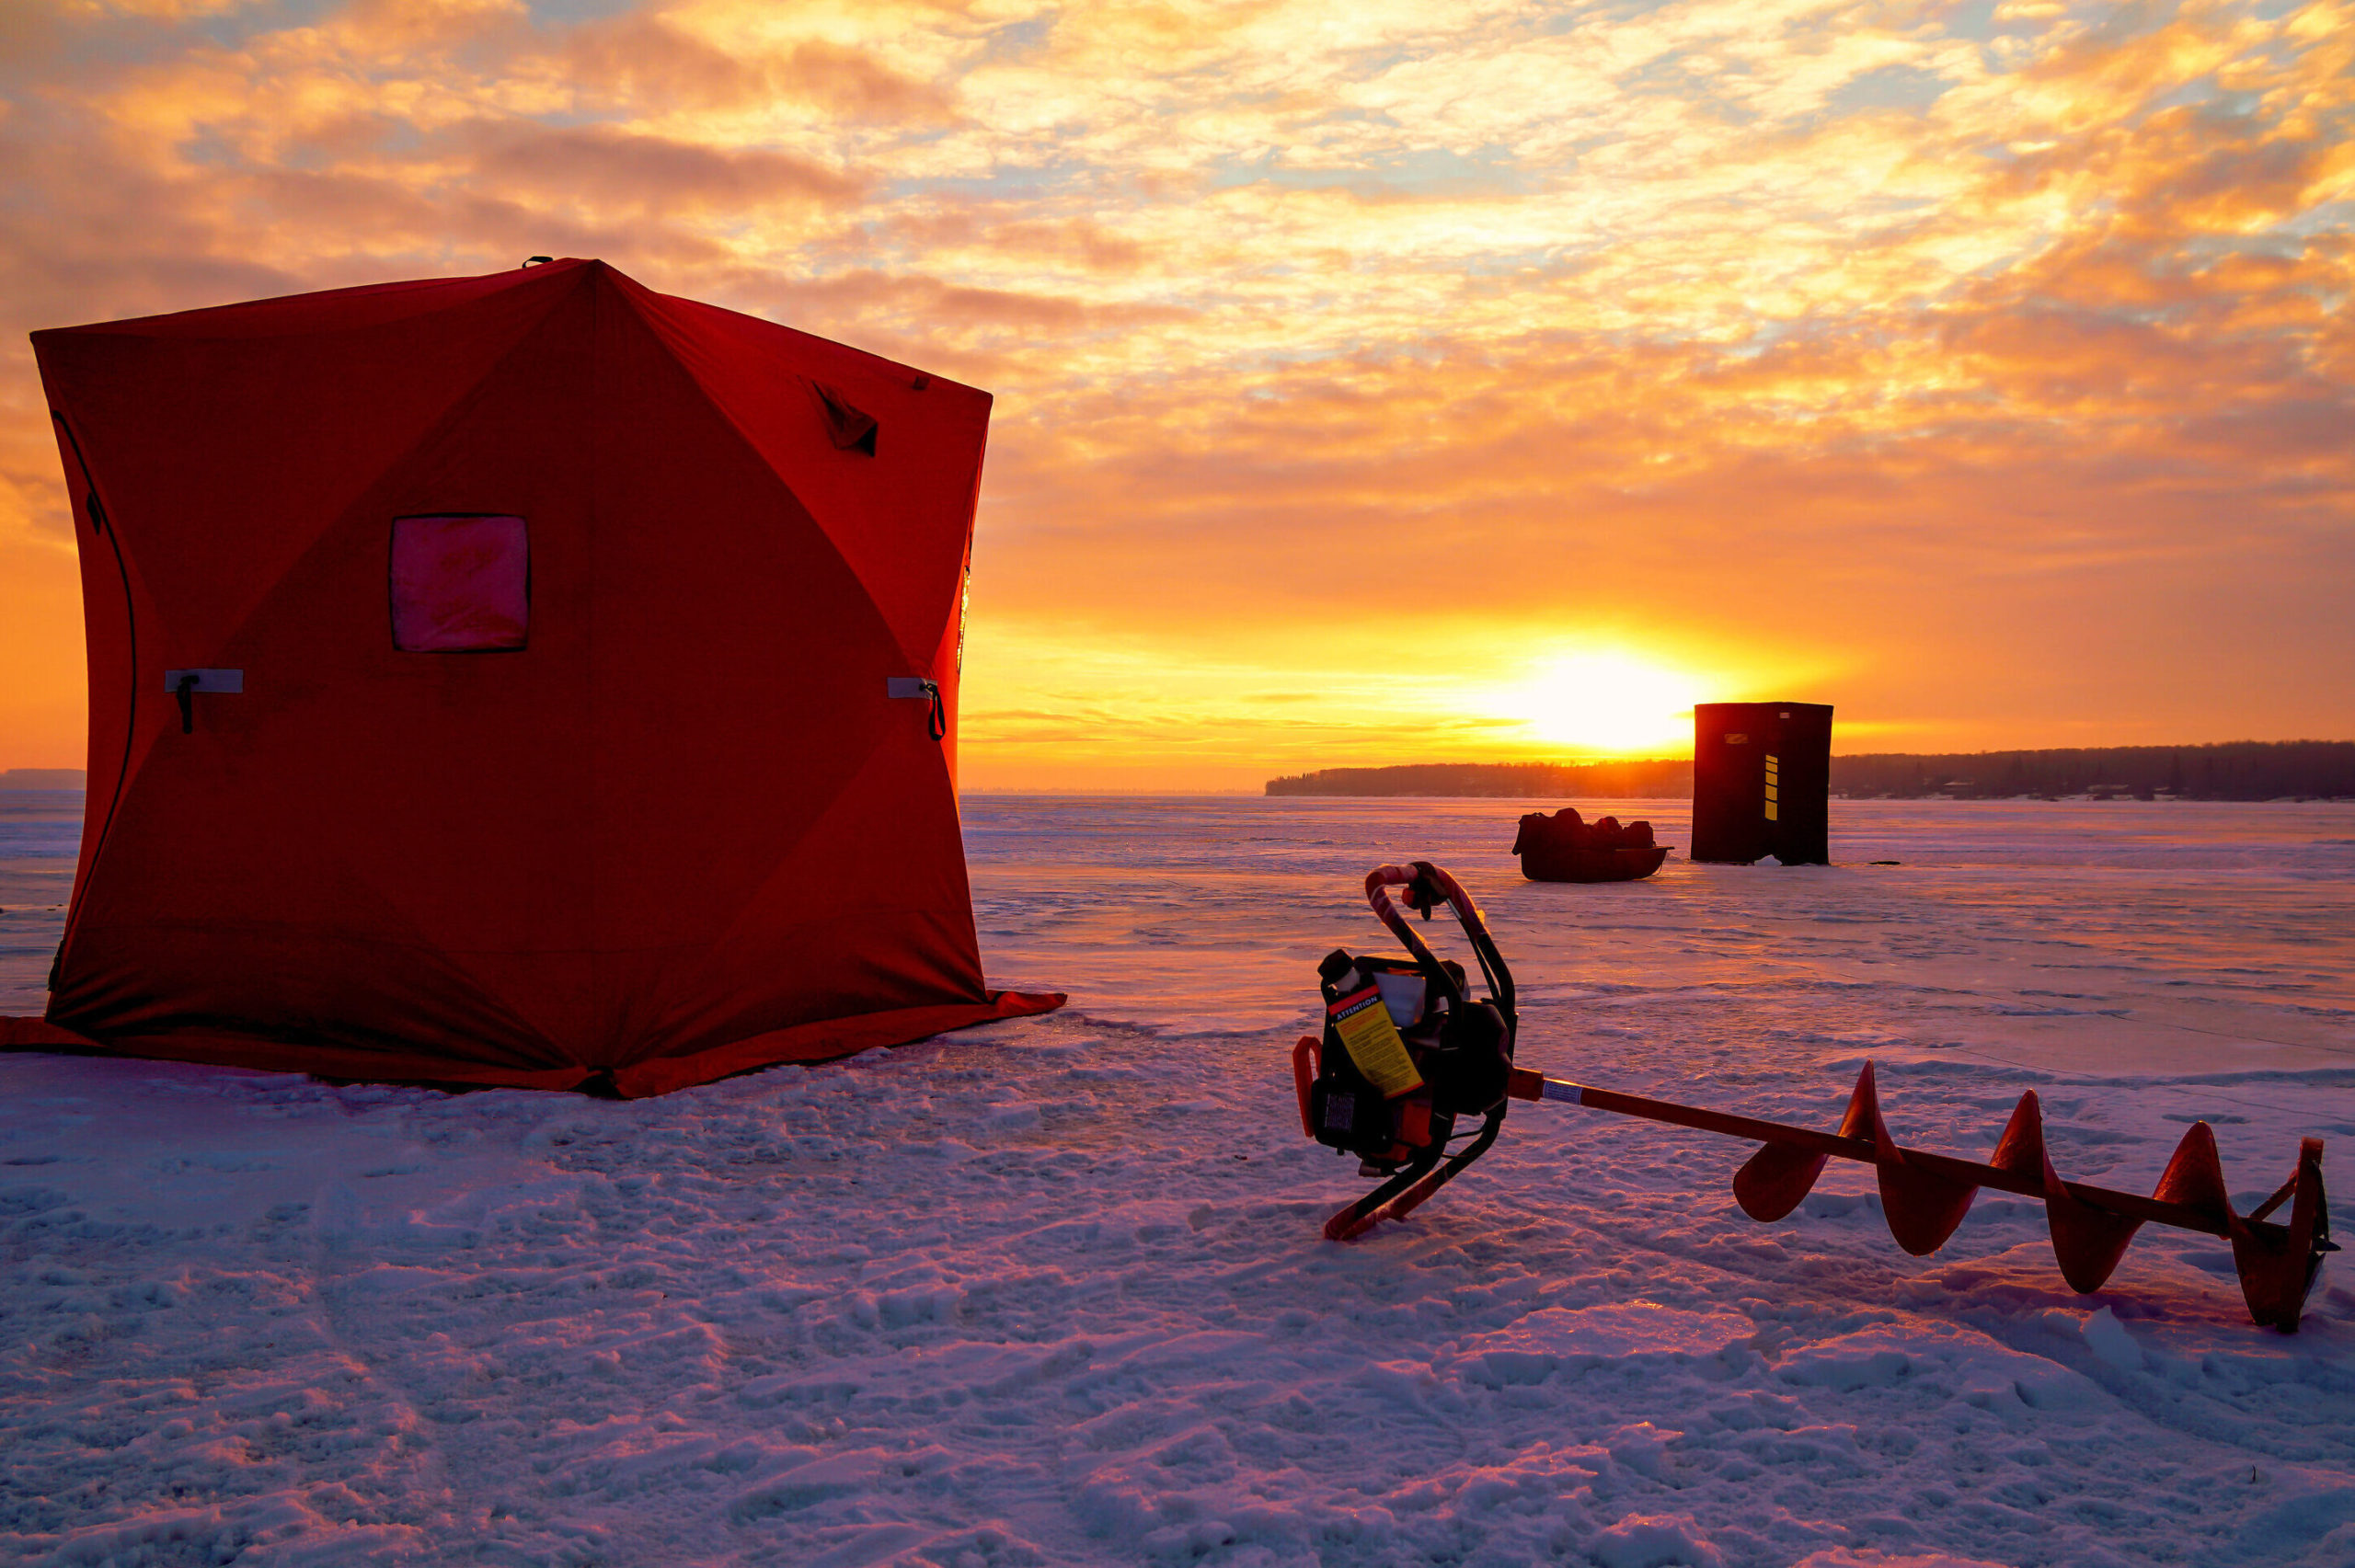 A tent and an ice drill on a frozen lake